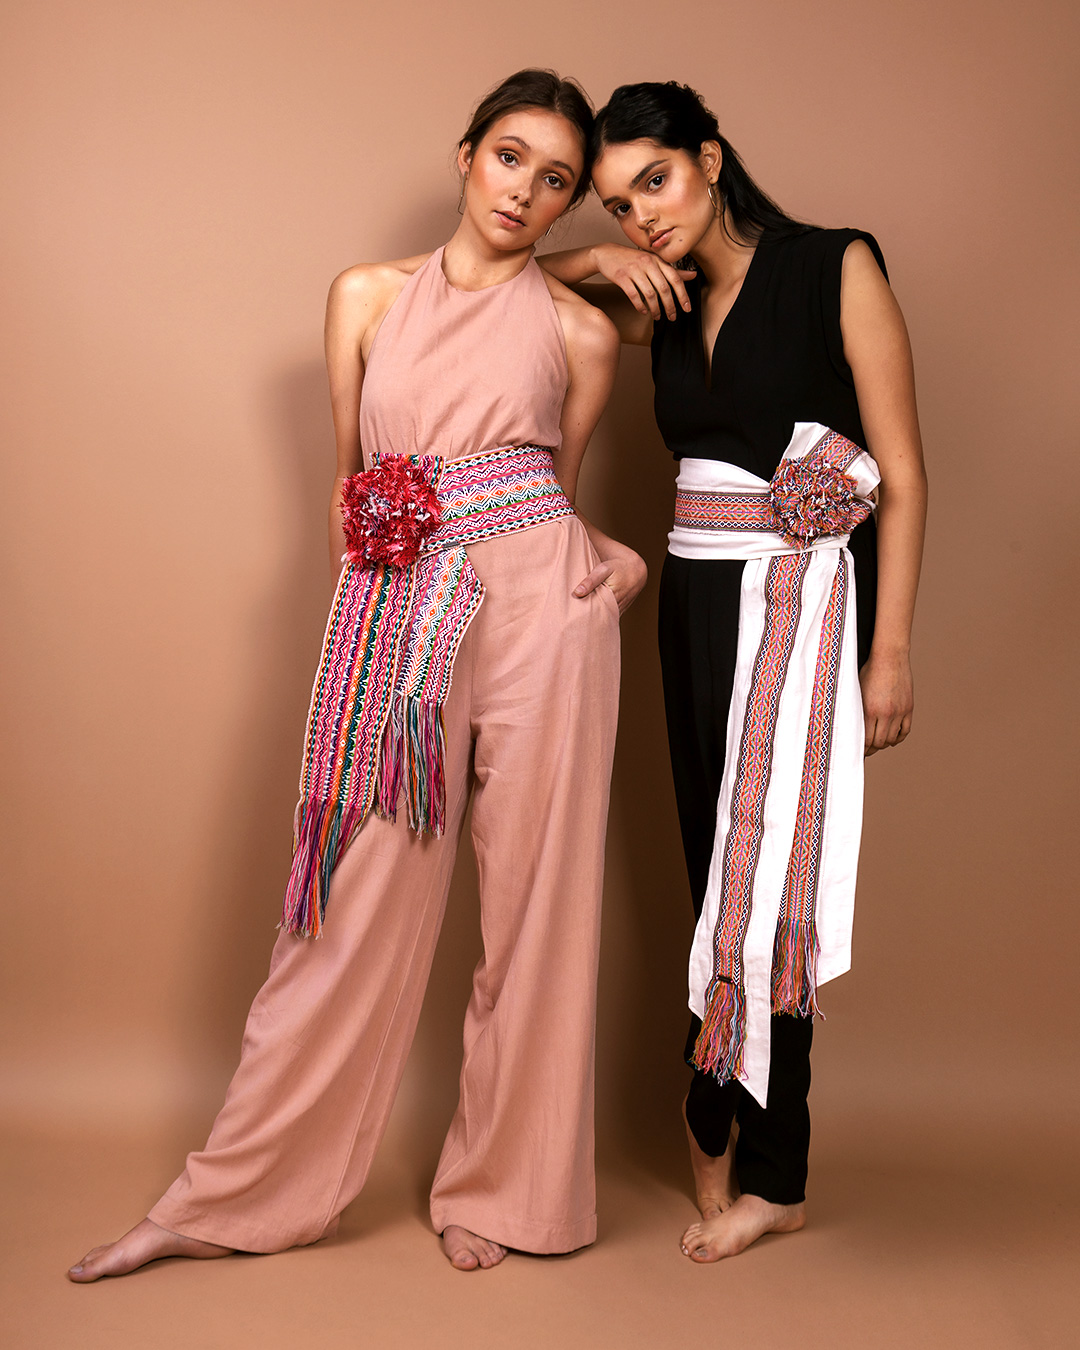 A photo of two models wearing items of clothing sold by TAARACH®